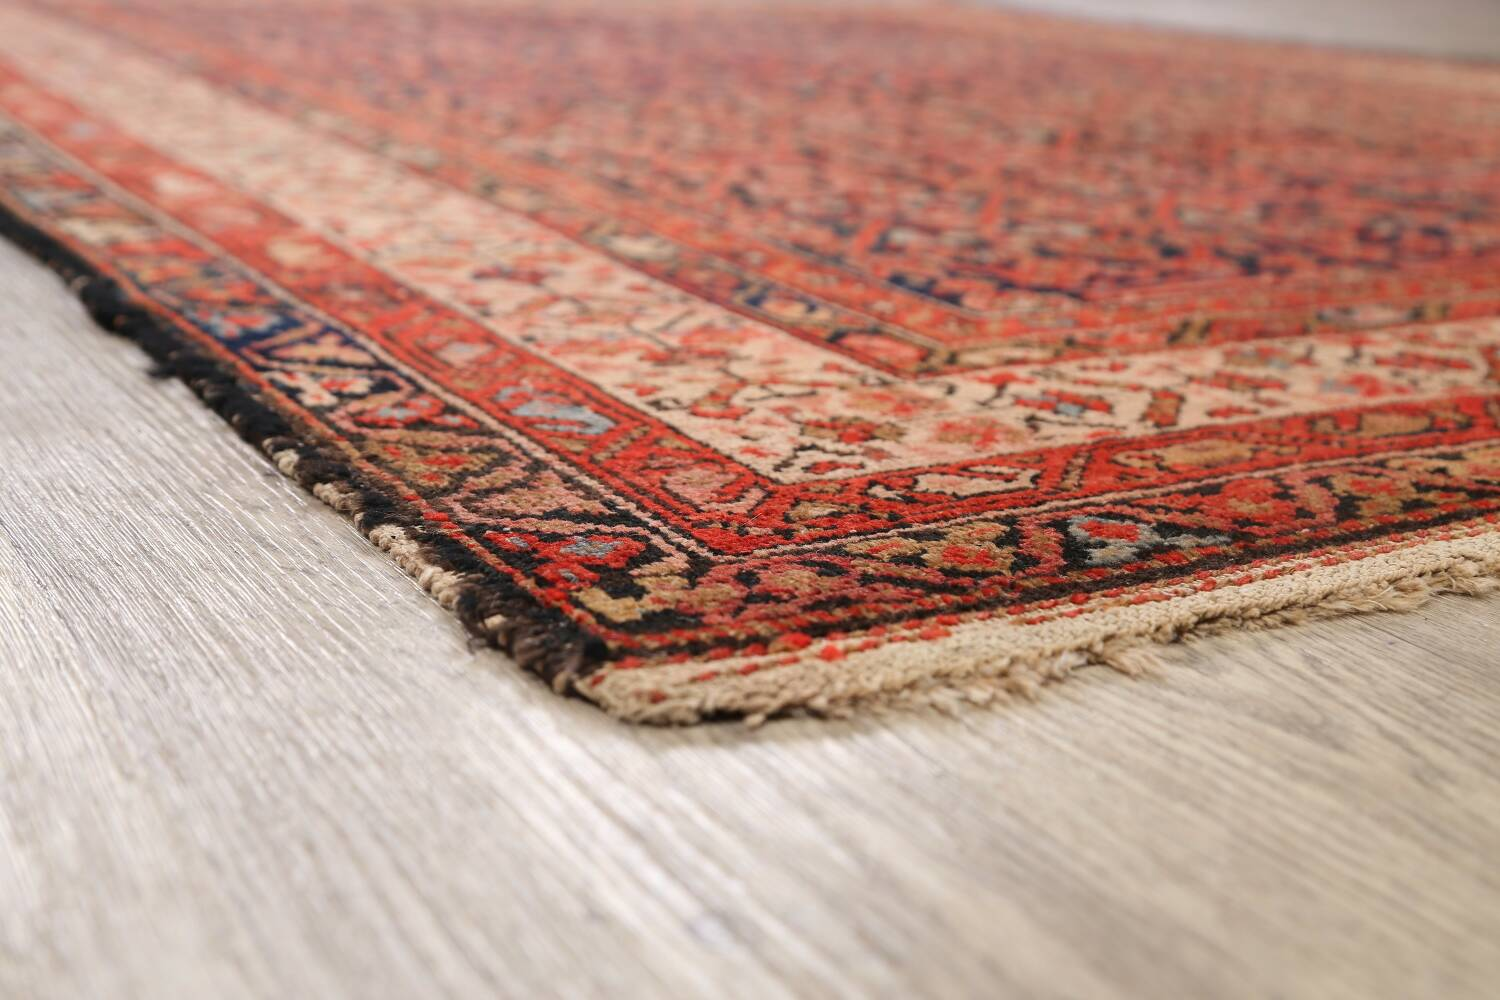 Pre-1900 Antique Malayer Vegetable Dye Persian Area Rug 5x7 image 6